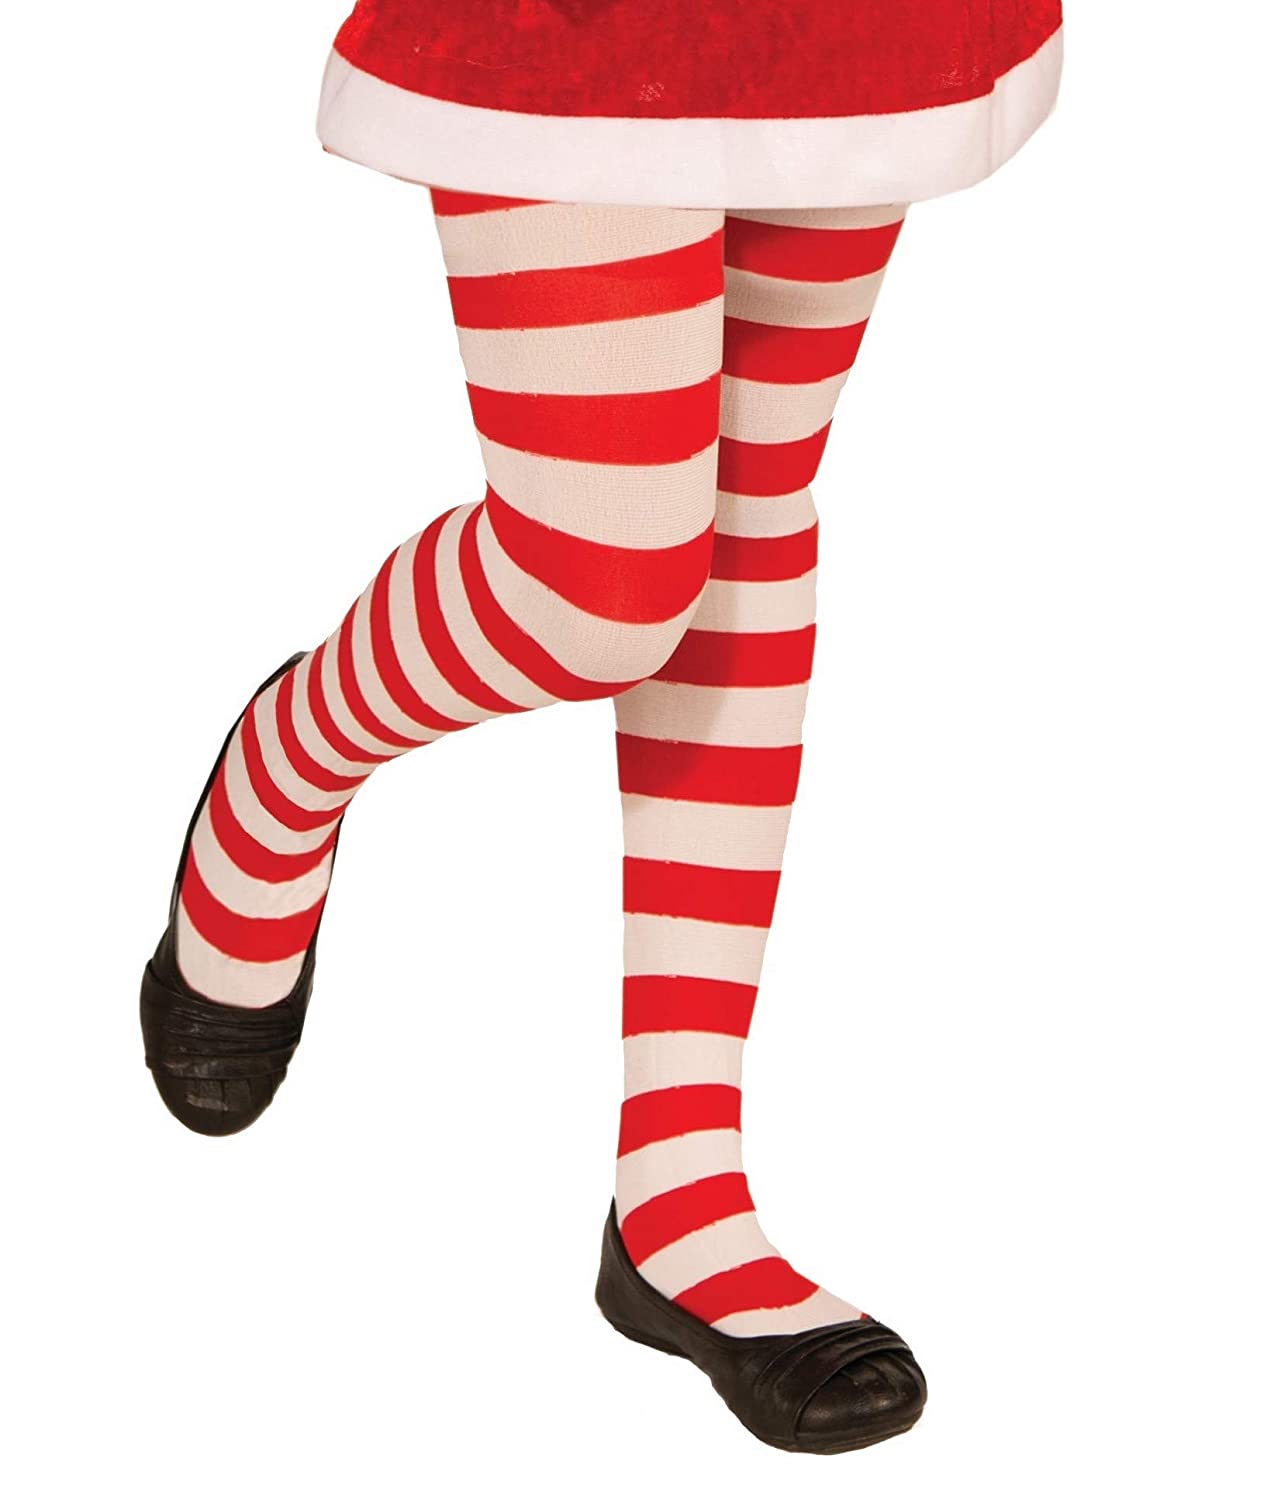 Forum Novelties Novelty Candy Cane Striped Christmas Tights, Child Large 71929